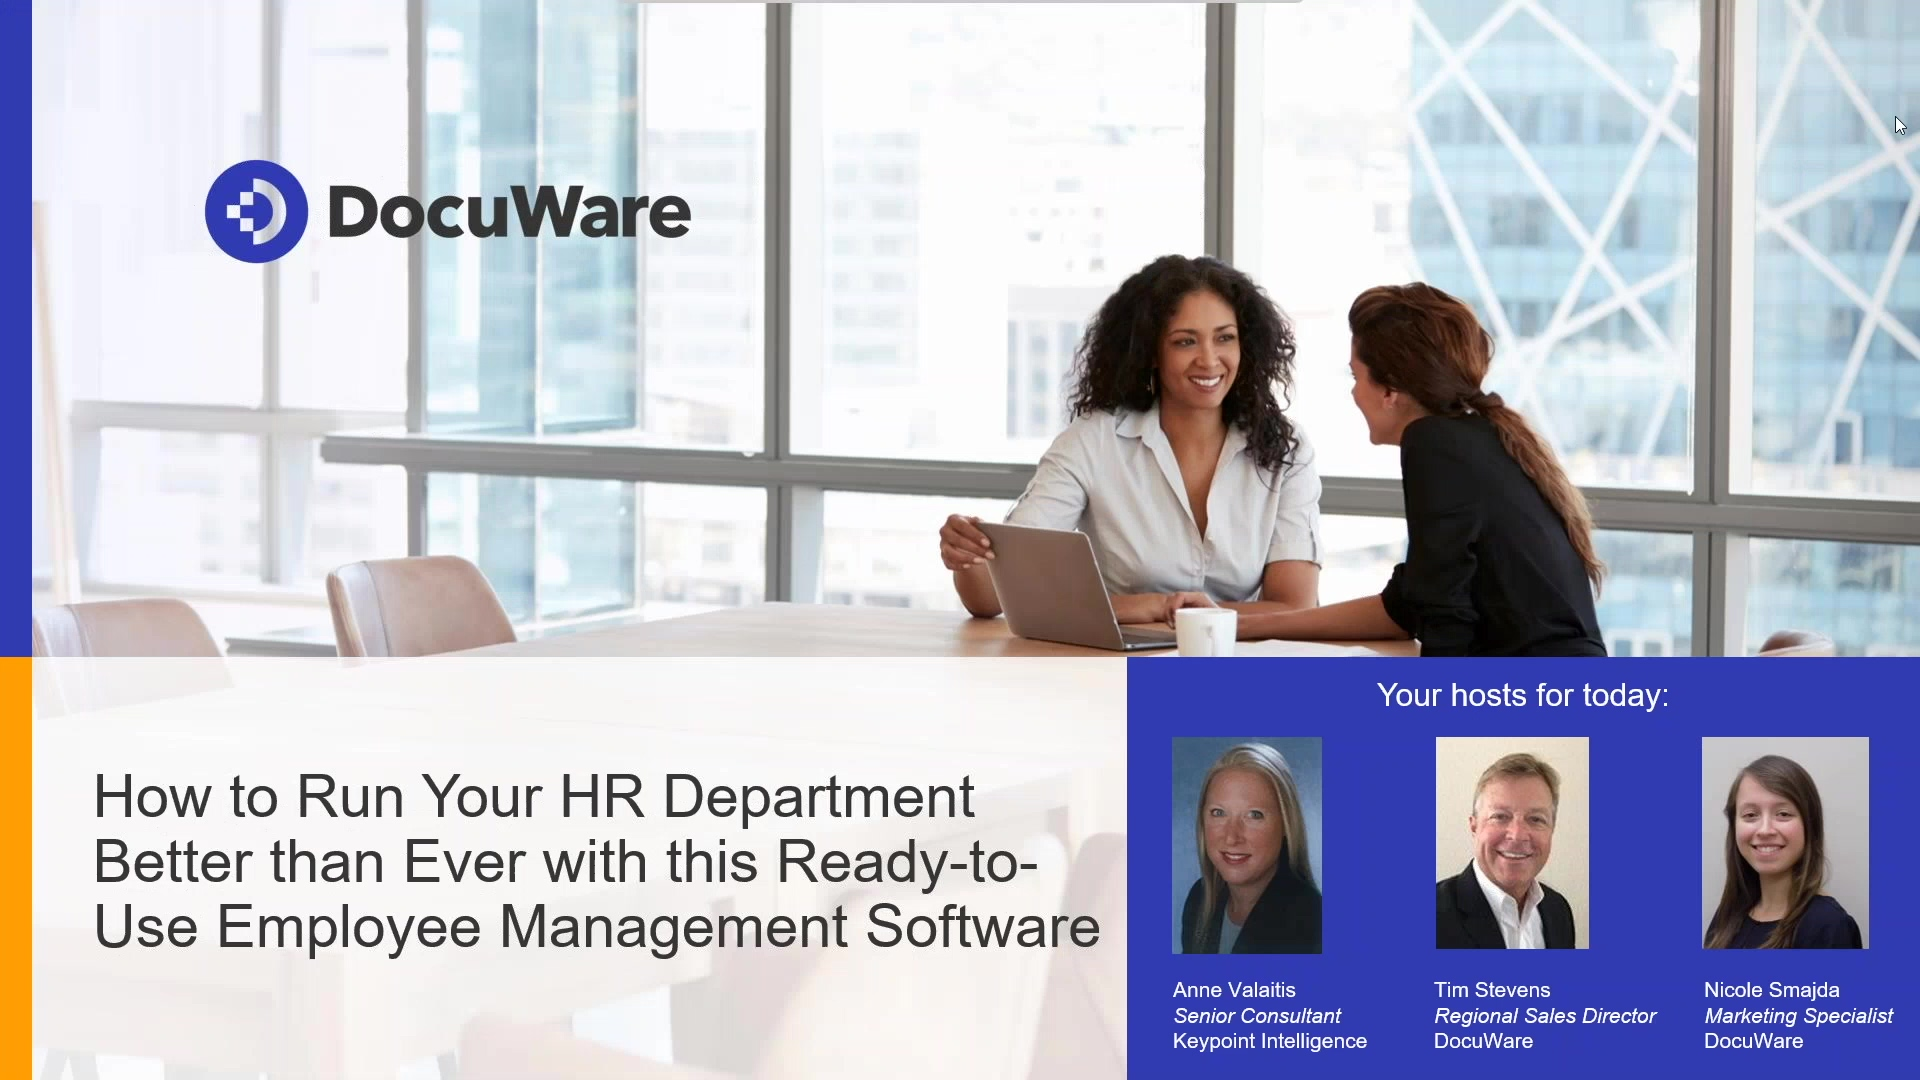 Simplify HR Workflow Processes in Just Days with DocuWare Solution for Employee Management